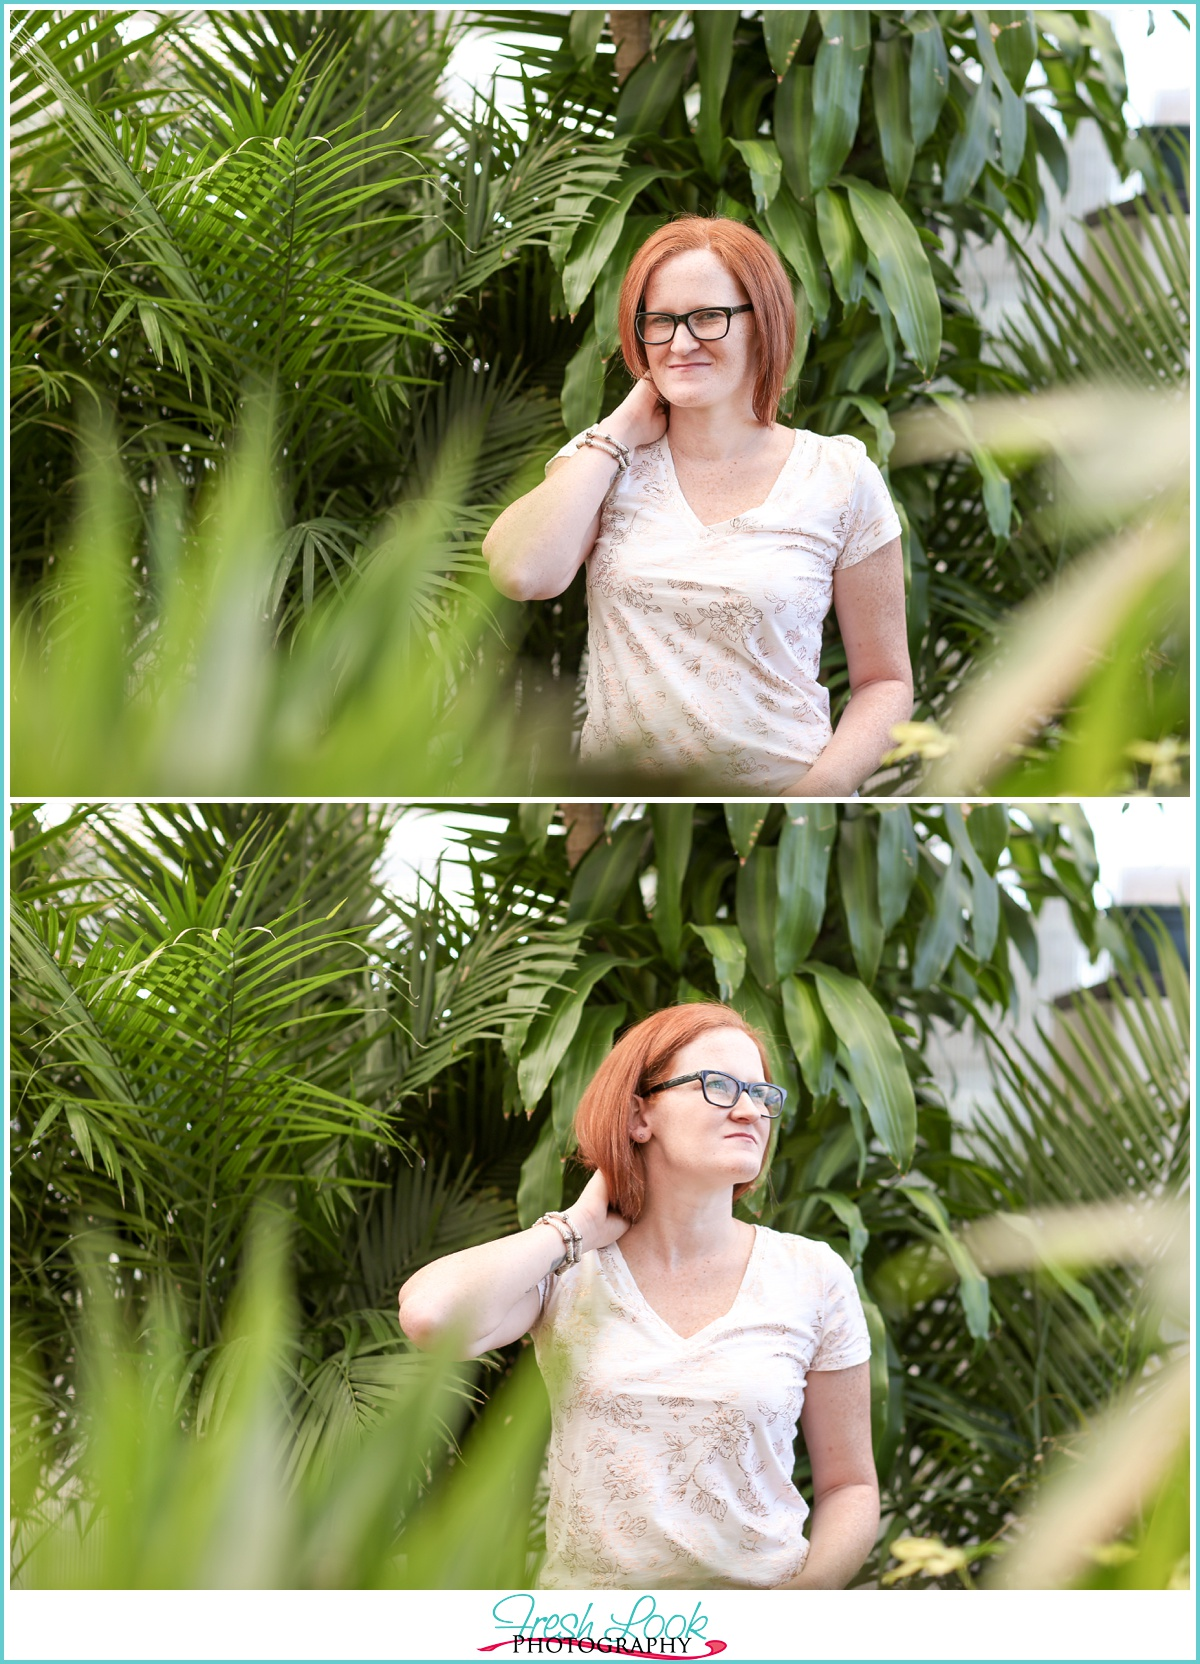 redhead model posing with rain forrest plants